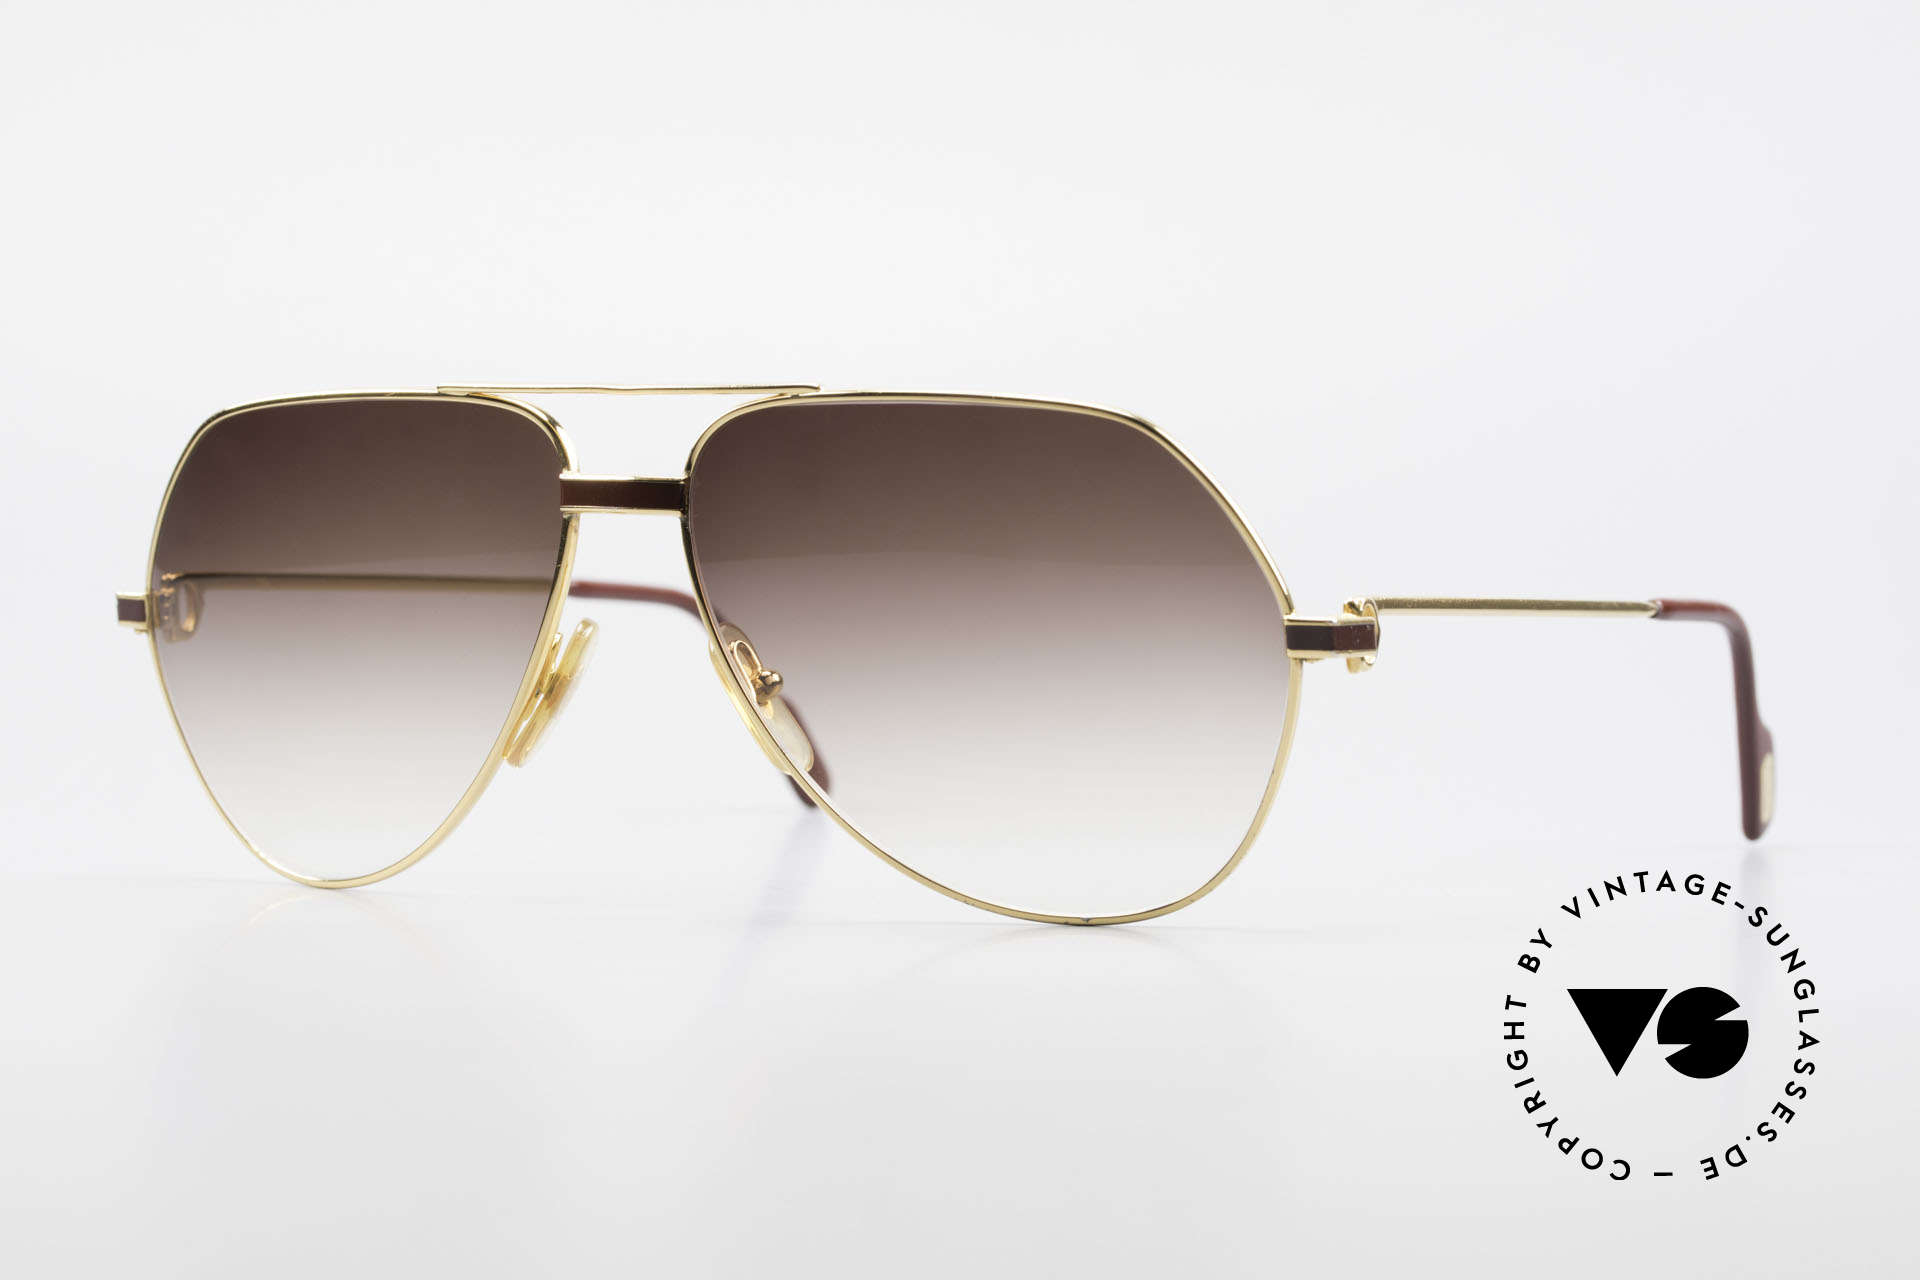 Cartier Vendome Laque - L Luxury Aviator Sunglasses, Vendome = the most famous eyewear design by CARTIER, Made for Men